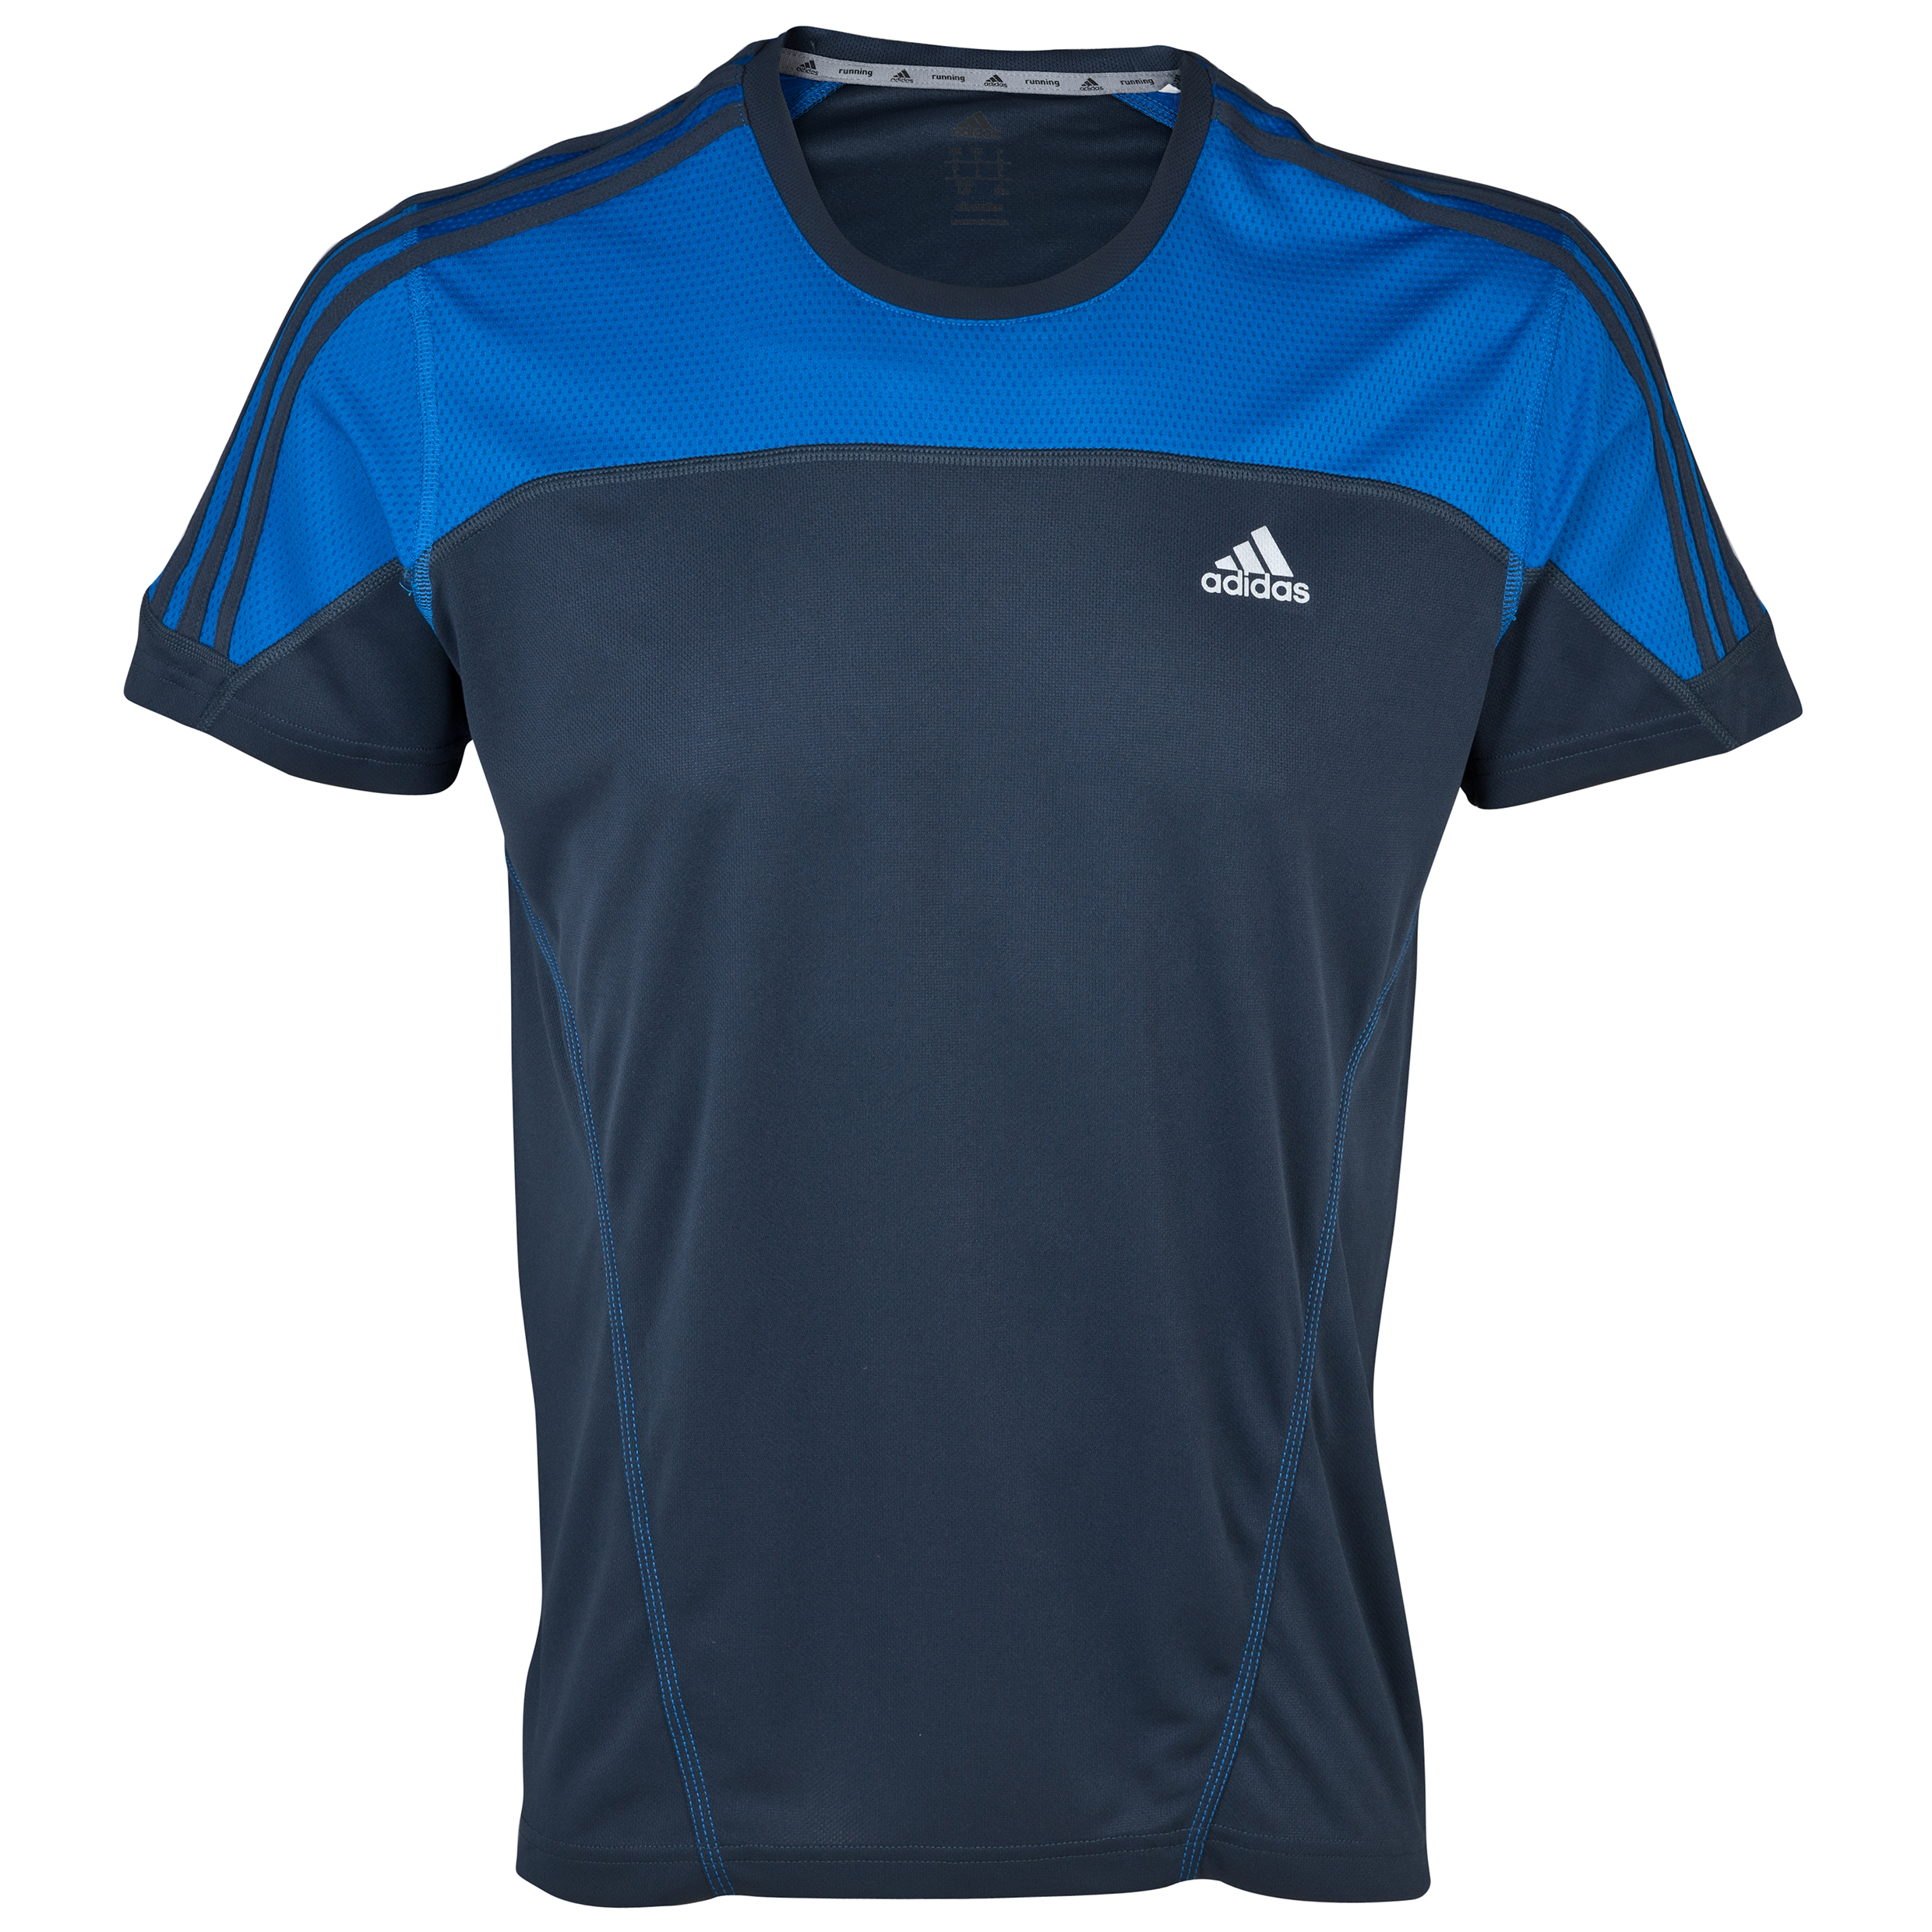 Adidas Response SS Tee - Nigh Shade/Blue Beauty Blue